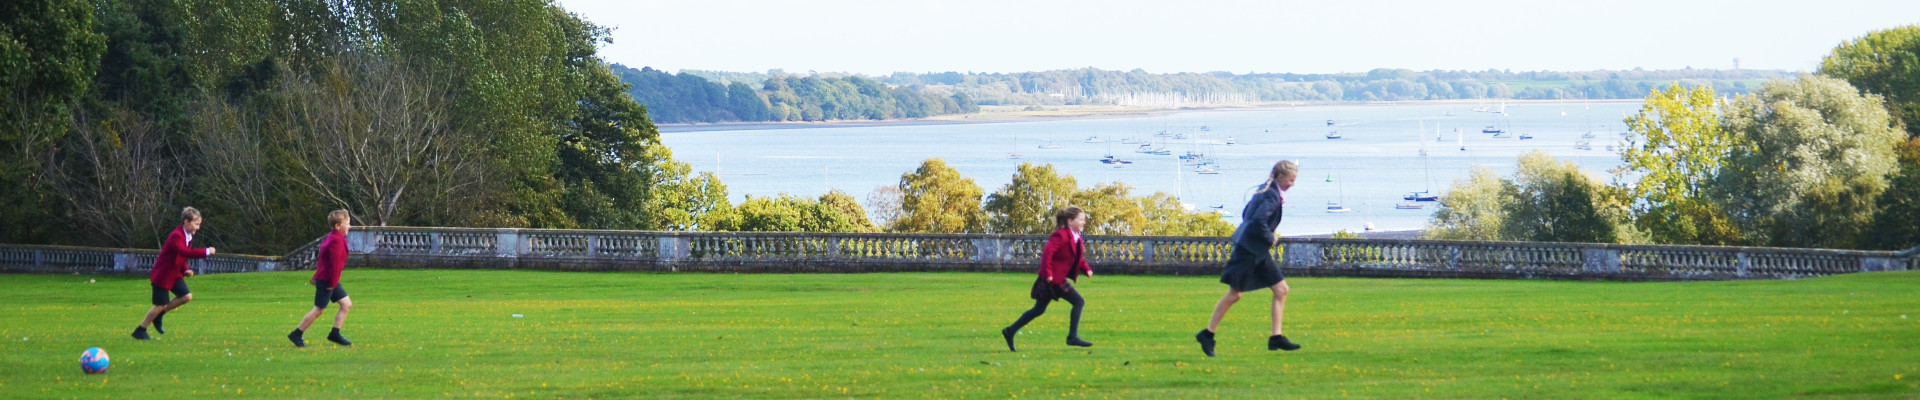 Ipswich High School pupils playing on the back lawn, overlooking the River Orwell